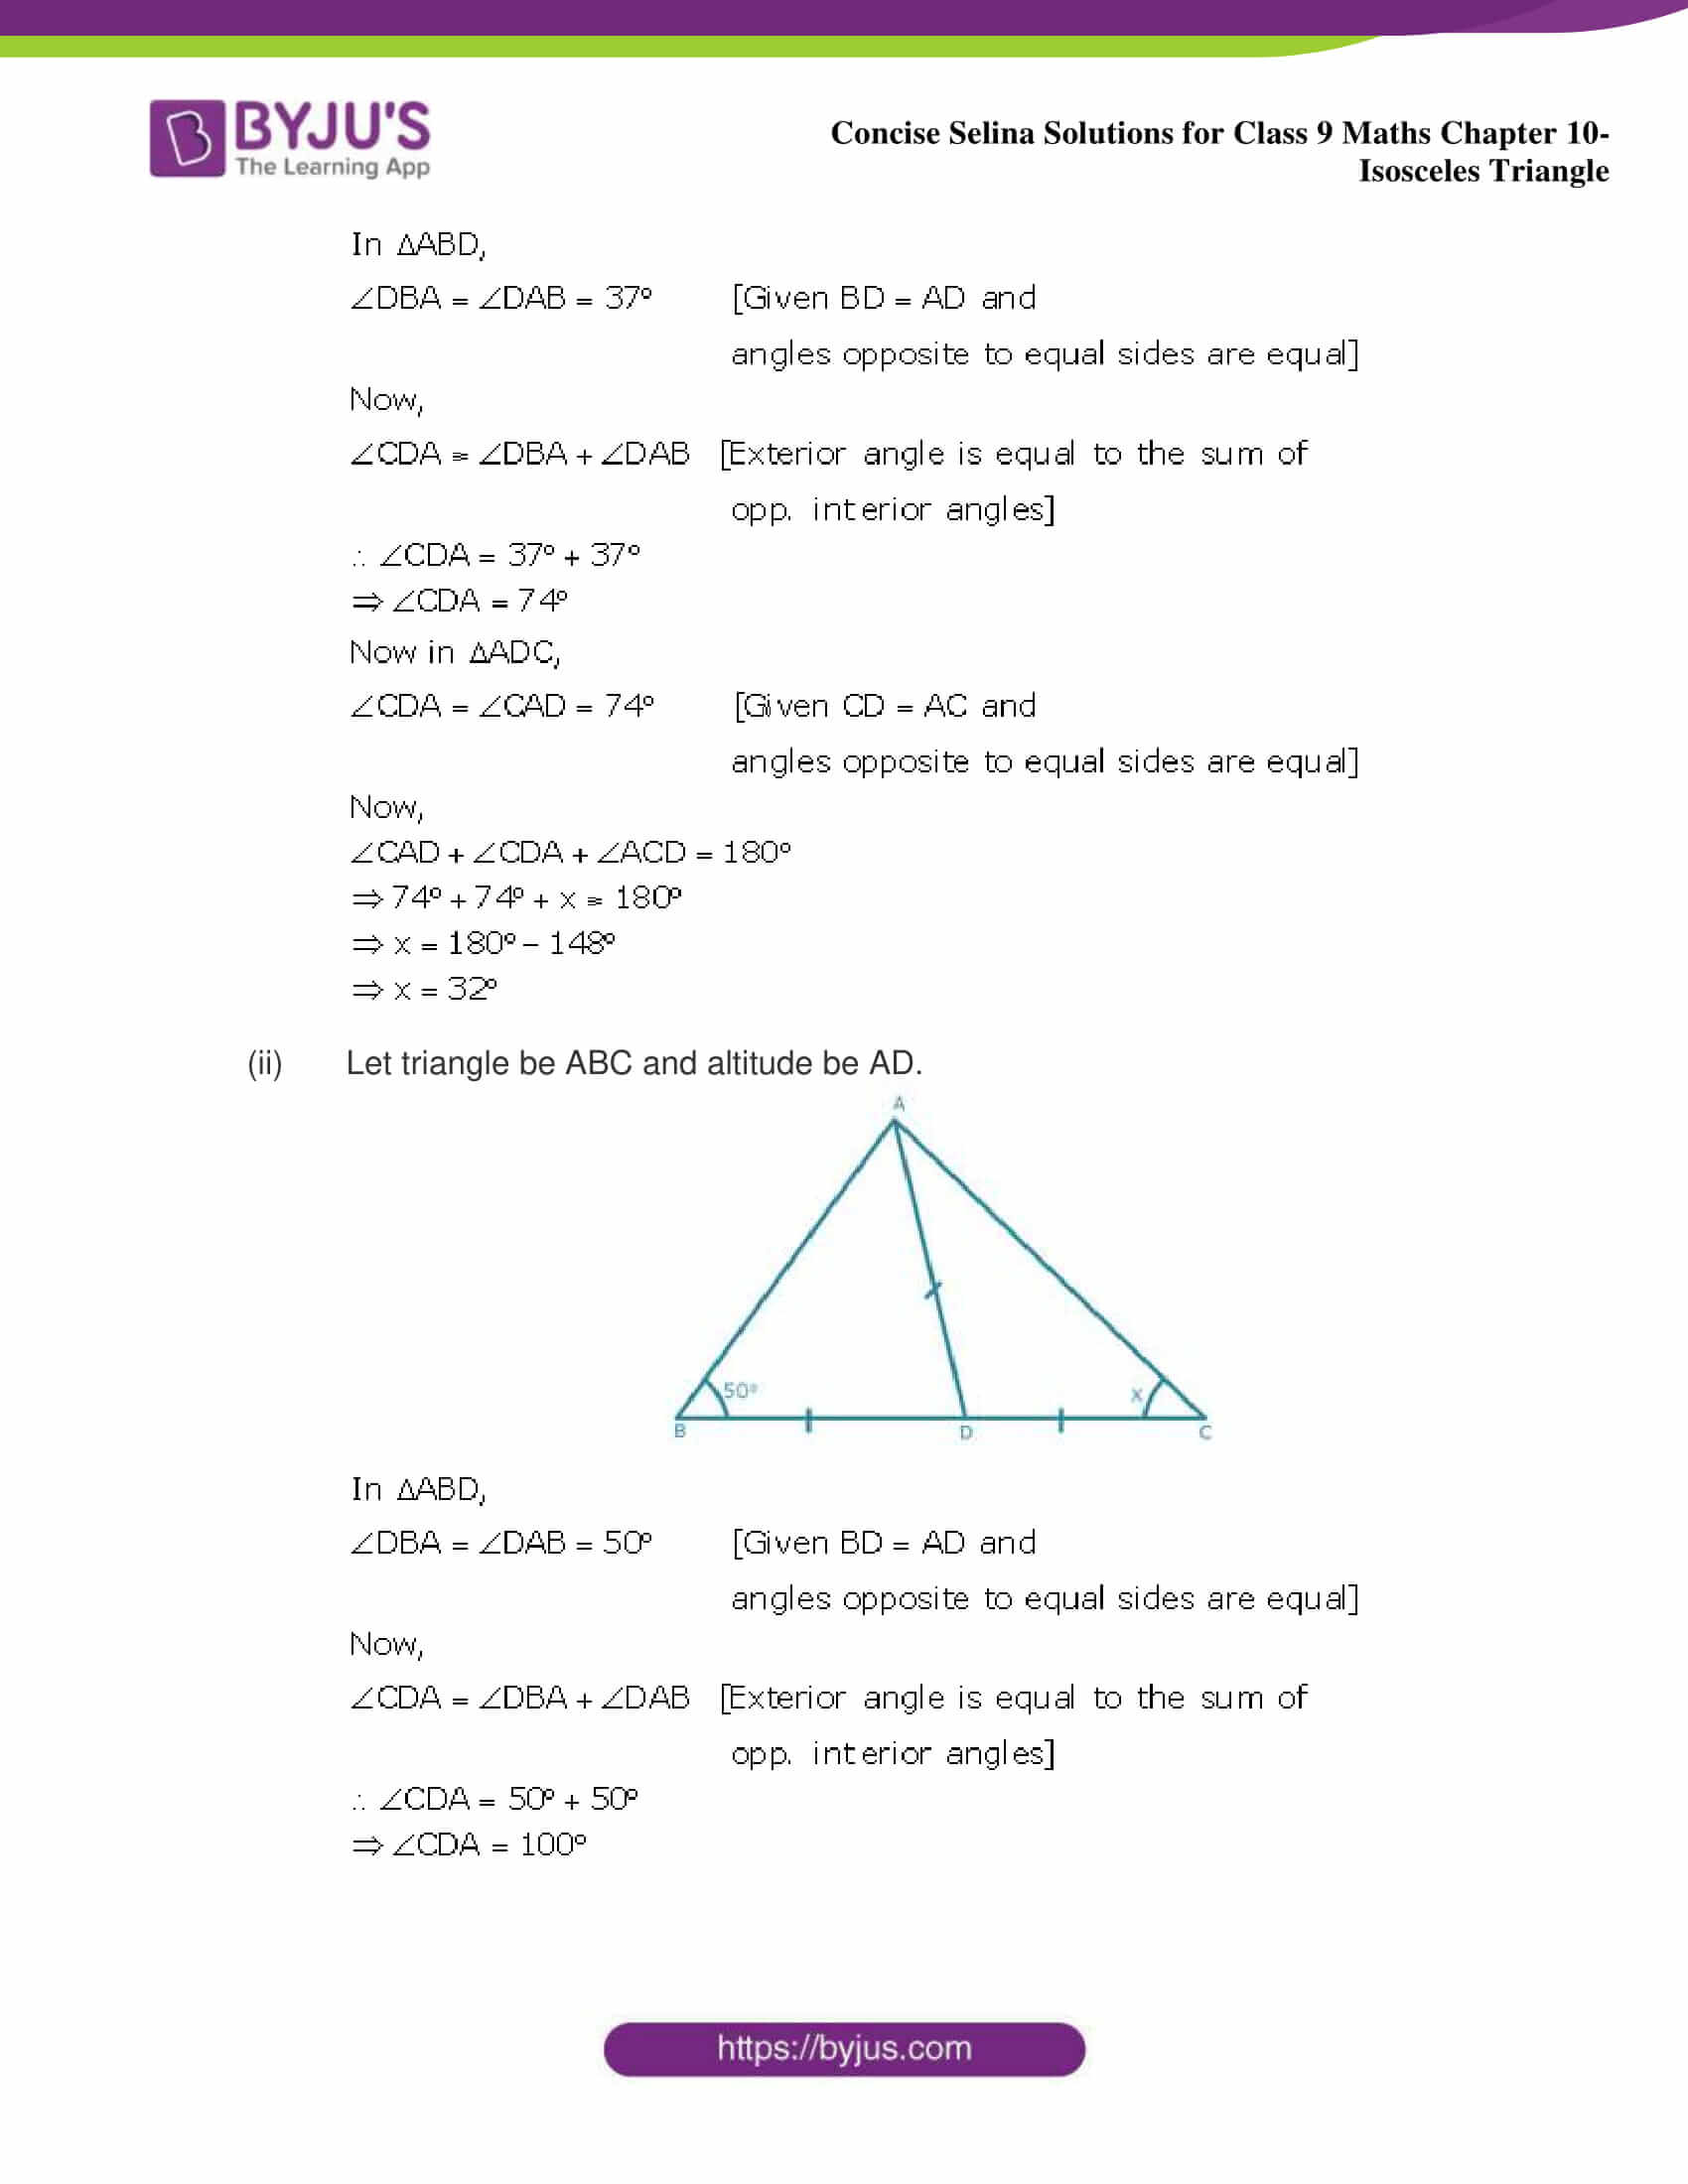 selina Solutions for Class 9 Maths Chapter 10 part 05